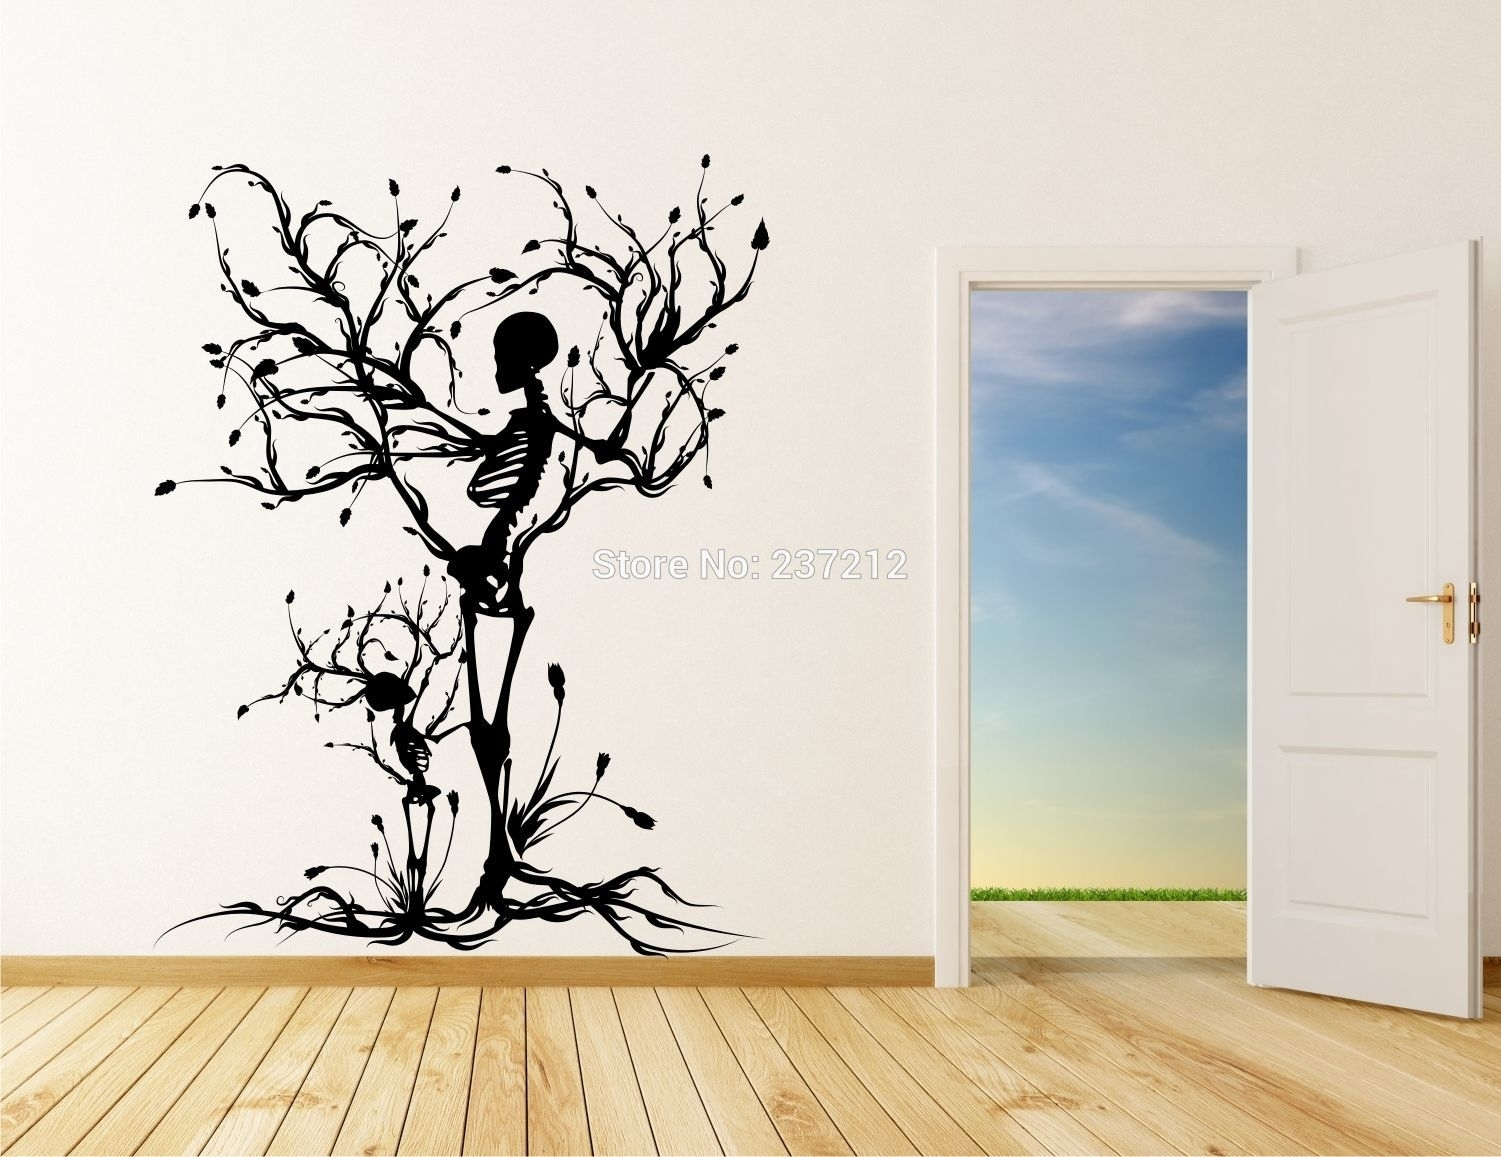 Wall Art Decals | Phobi Home Designs : Decorate Wall Art Decals Ideas Inside 2018 Art For Walls (View 6 of 20)